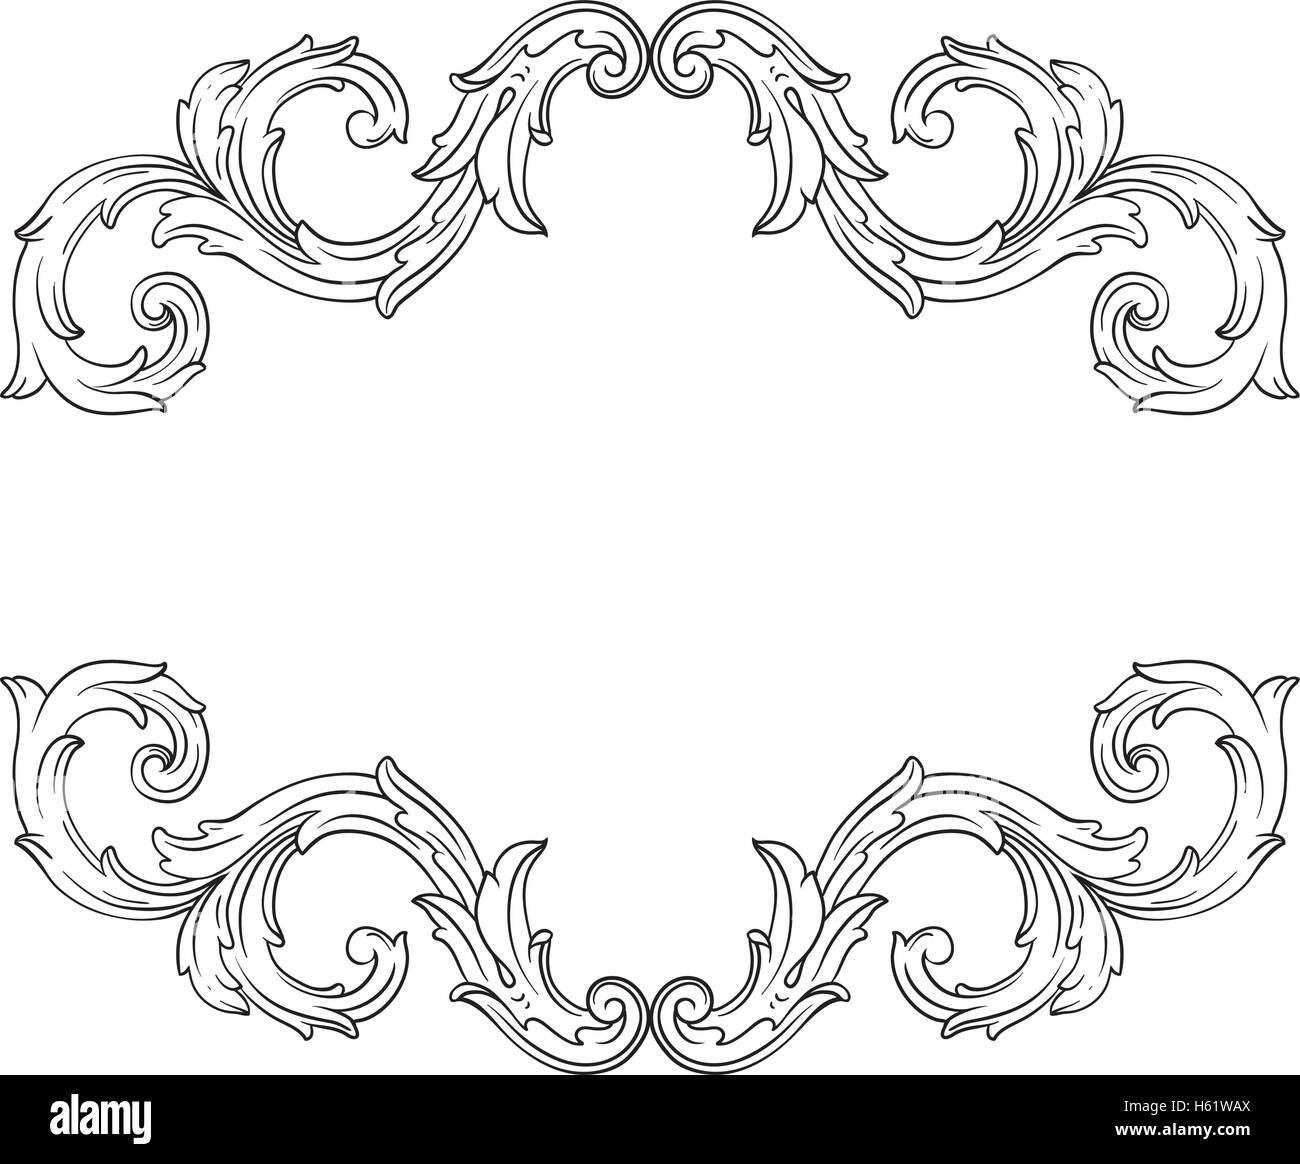 stock vector vintage baroque frame scroll ornament engraving border floral retro pattern antique style acanthus foliage swirl decorative desi